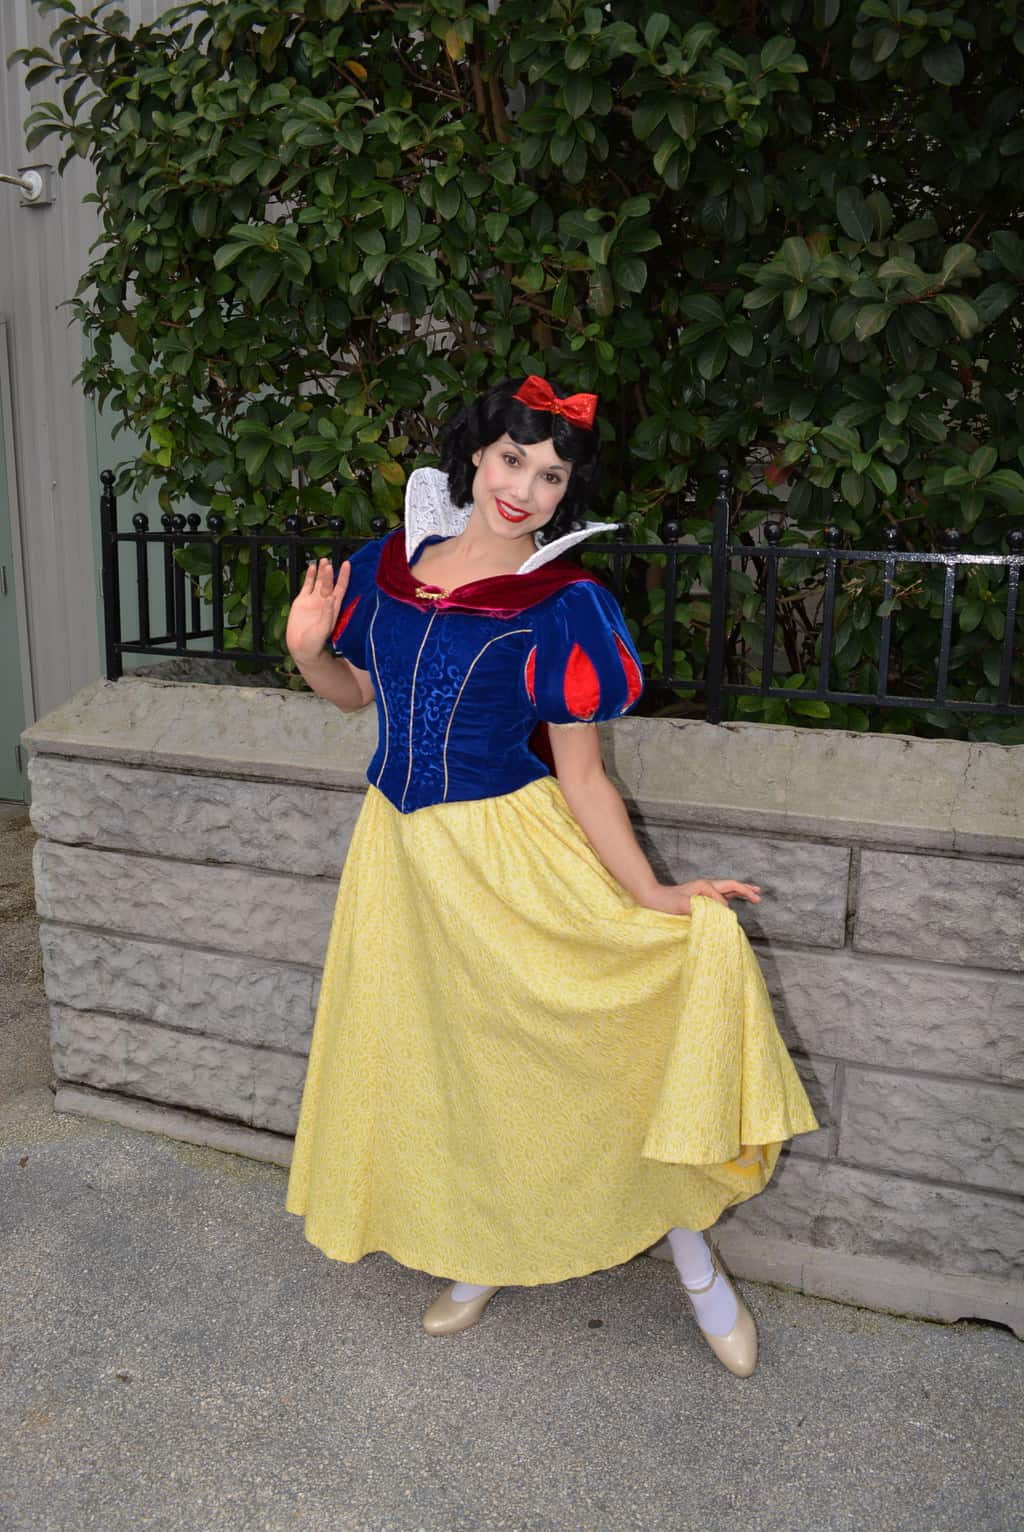 Walt Disney World, Hollywood Studios, Streets of America, Character Palooza, Snow White